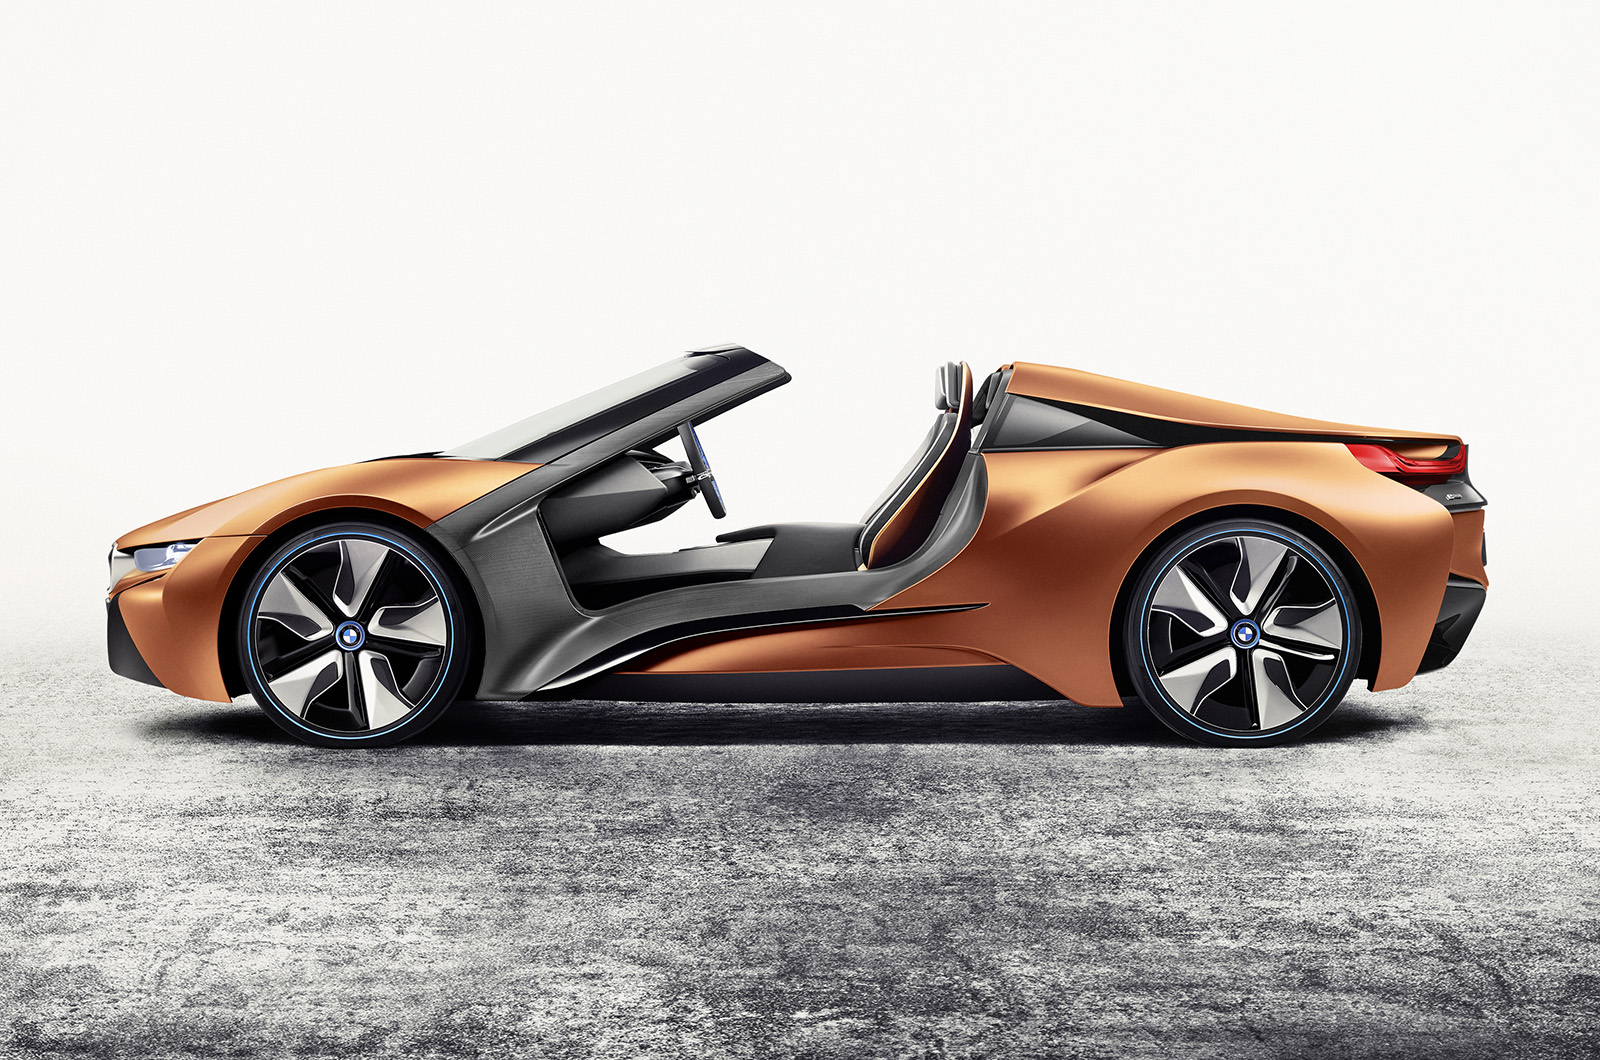 Facelifted Bmw I8 Will Get Extra Power Longer Range Autocar